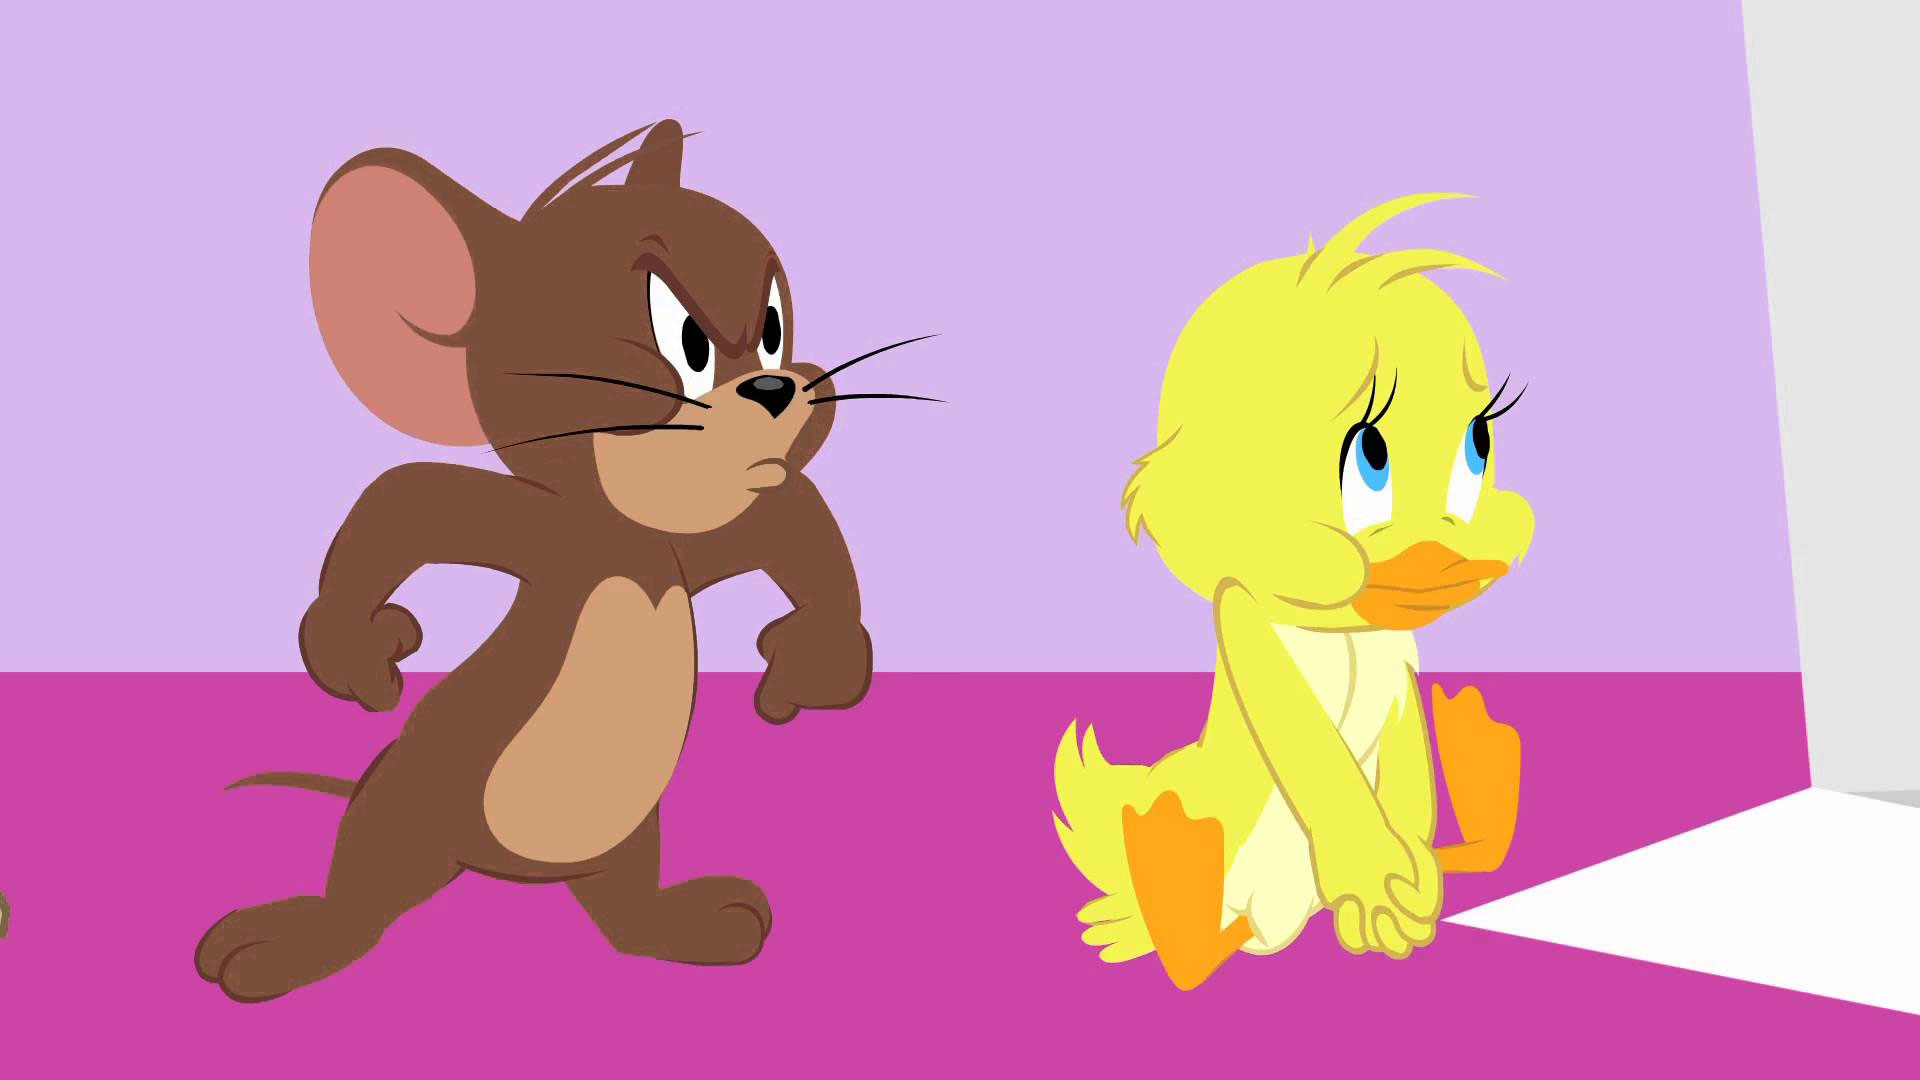 hd-pics-photos-stunning-attractive-tom-and-jerry-hd-desktop-background-wallpaper-wpc5805773